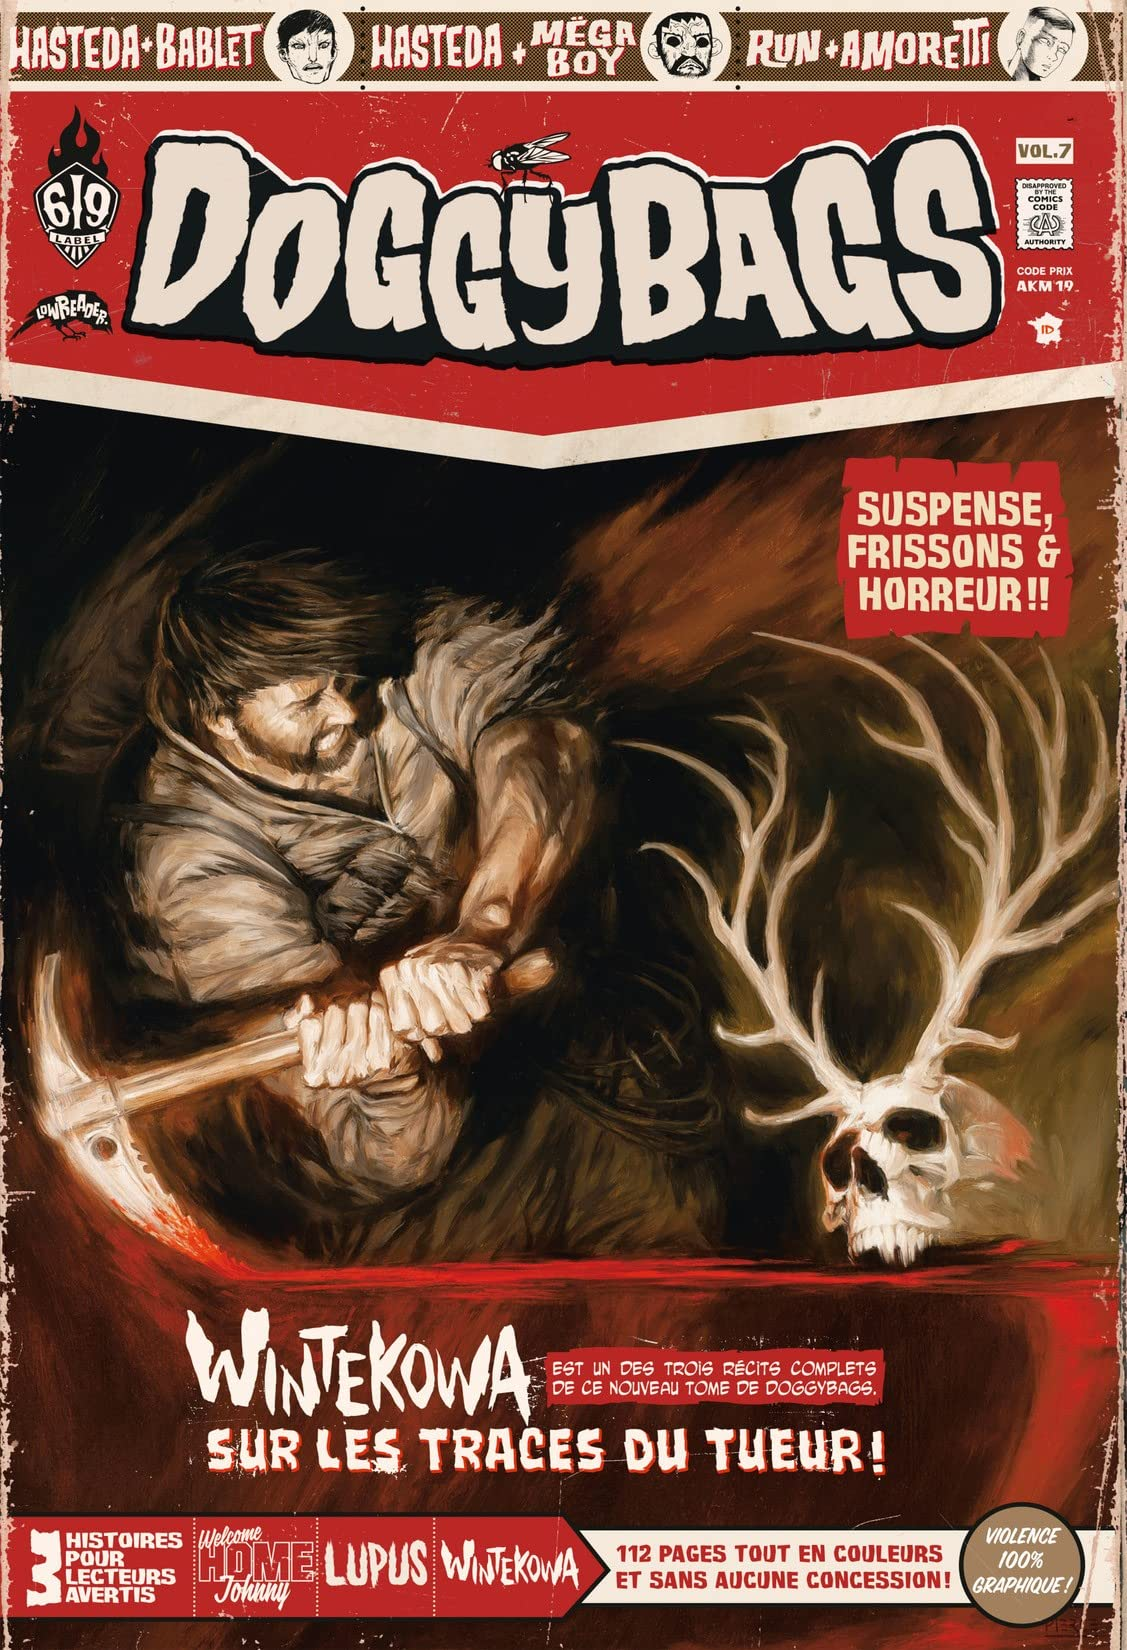 DoggyBags Vol. 7